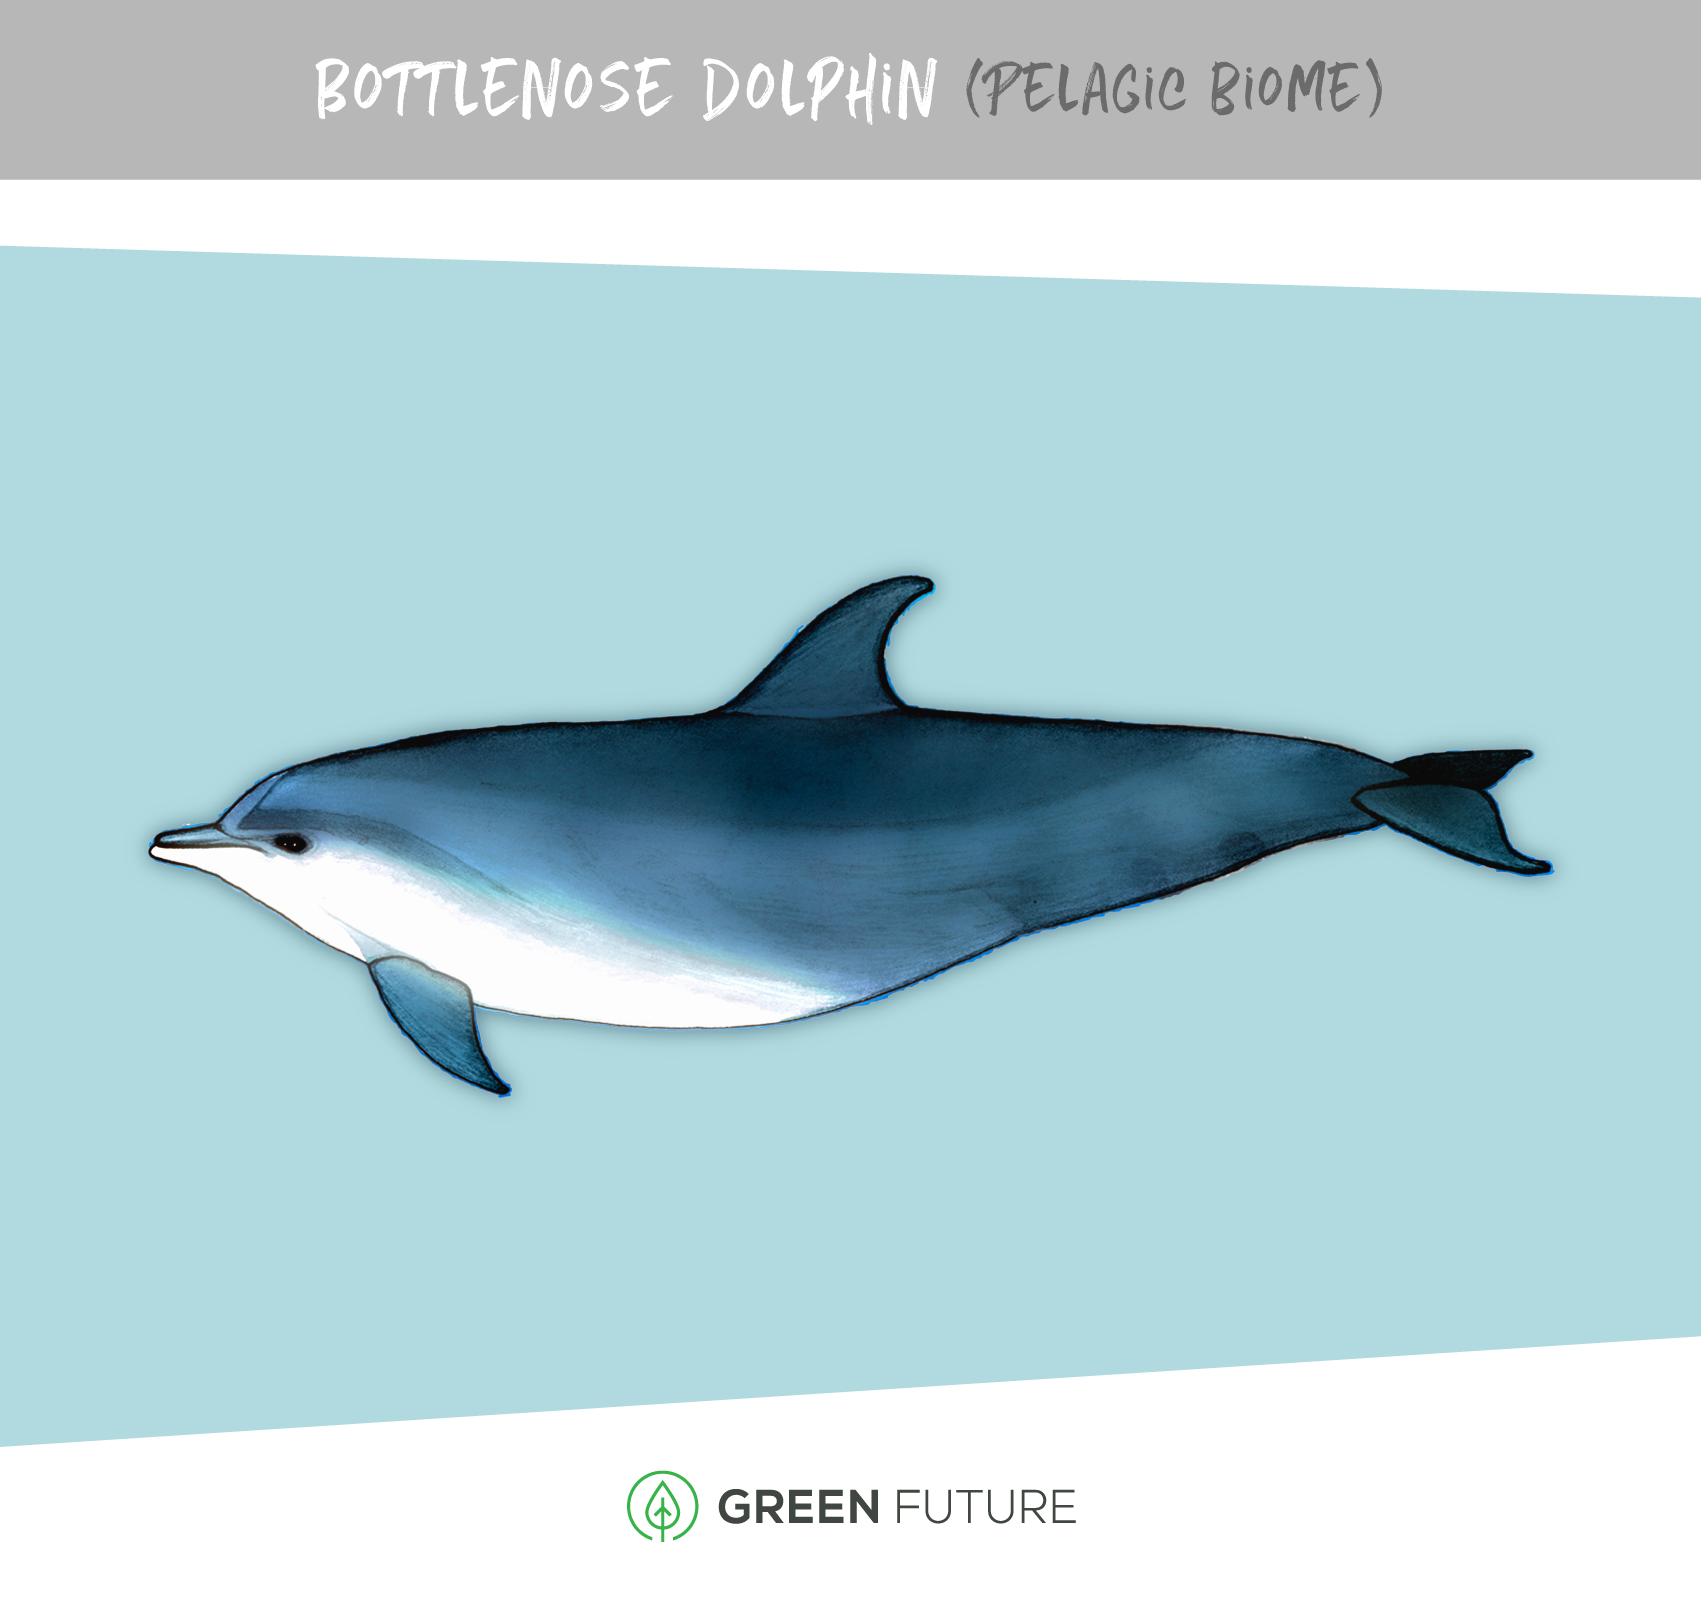 dolphin illustration marine biome